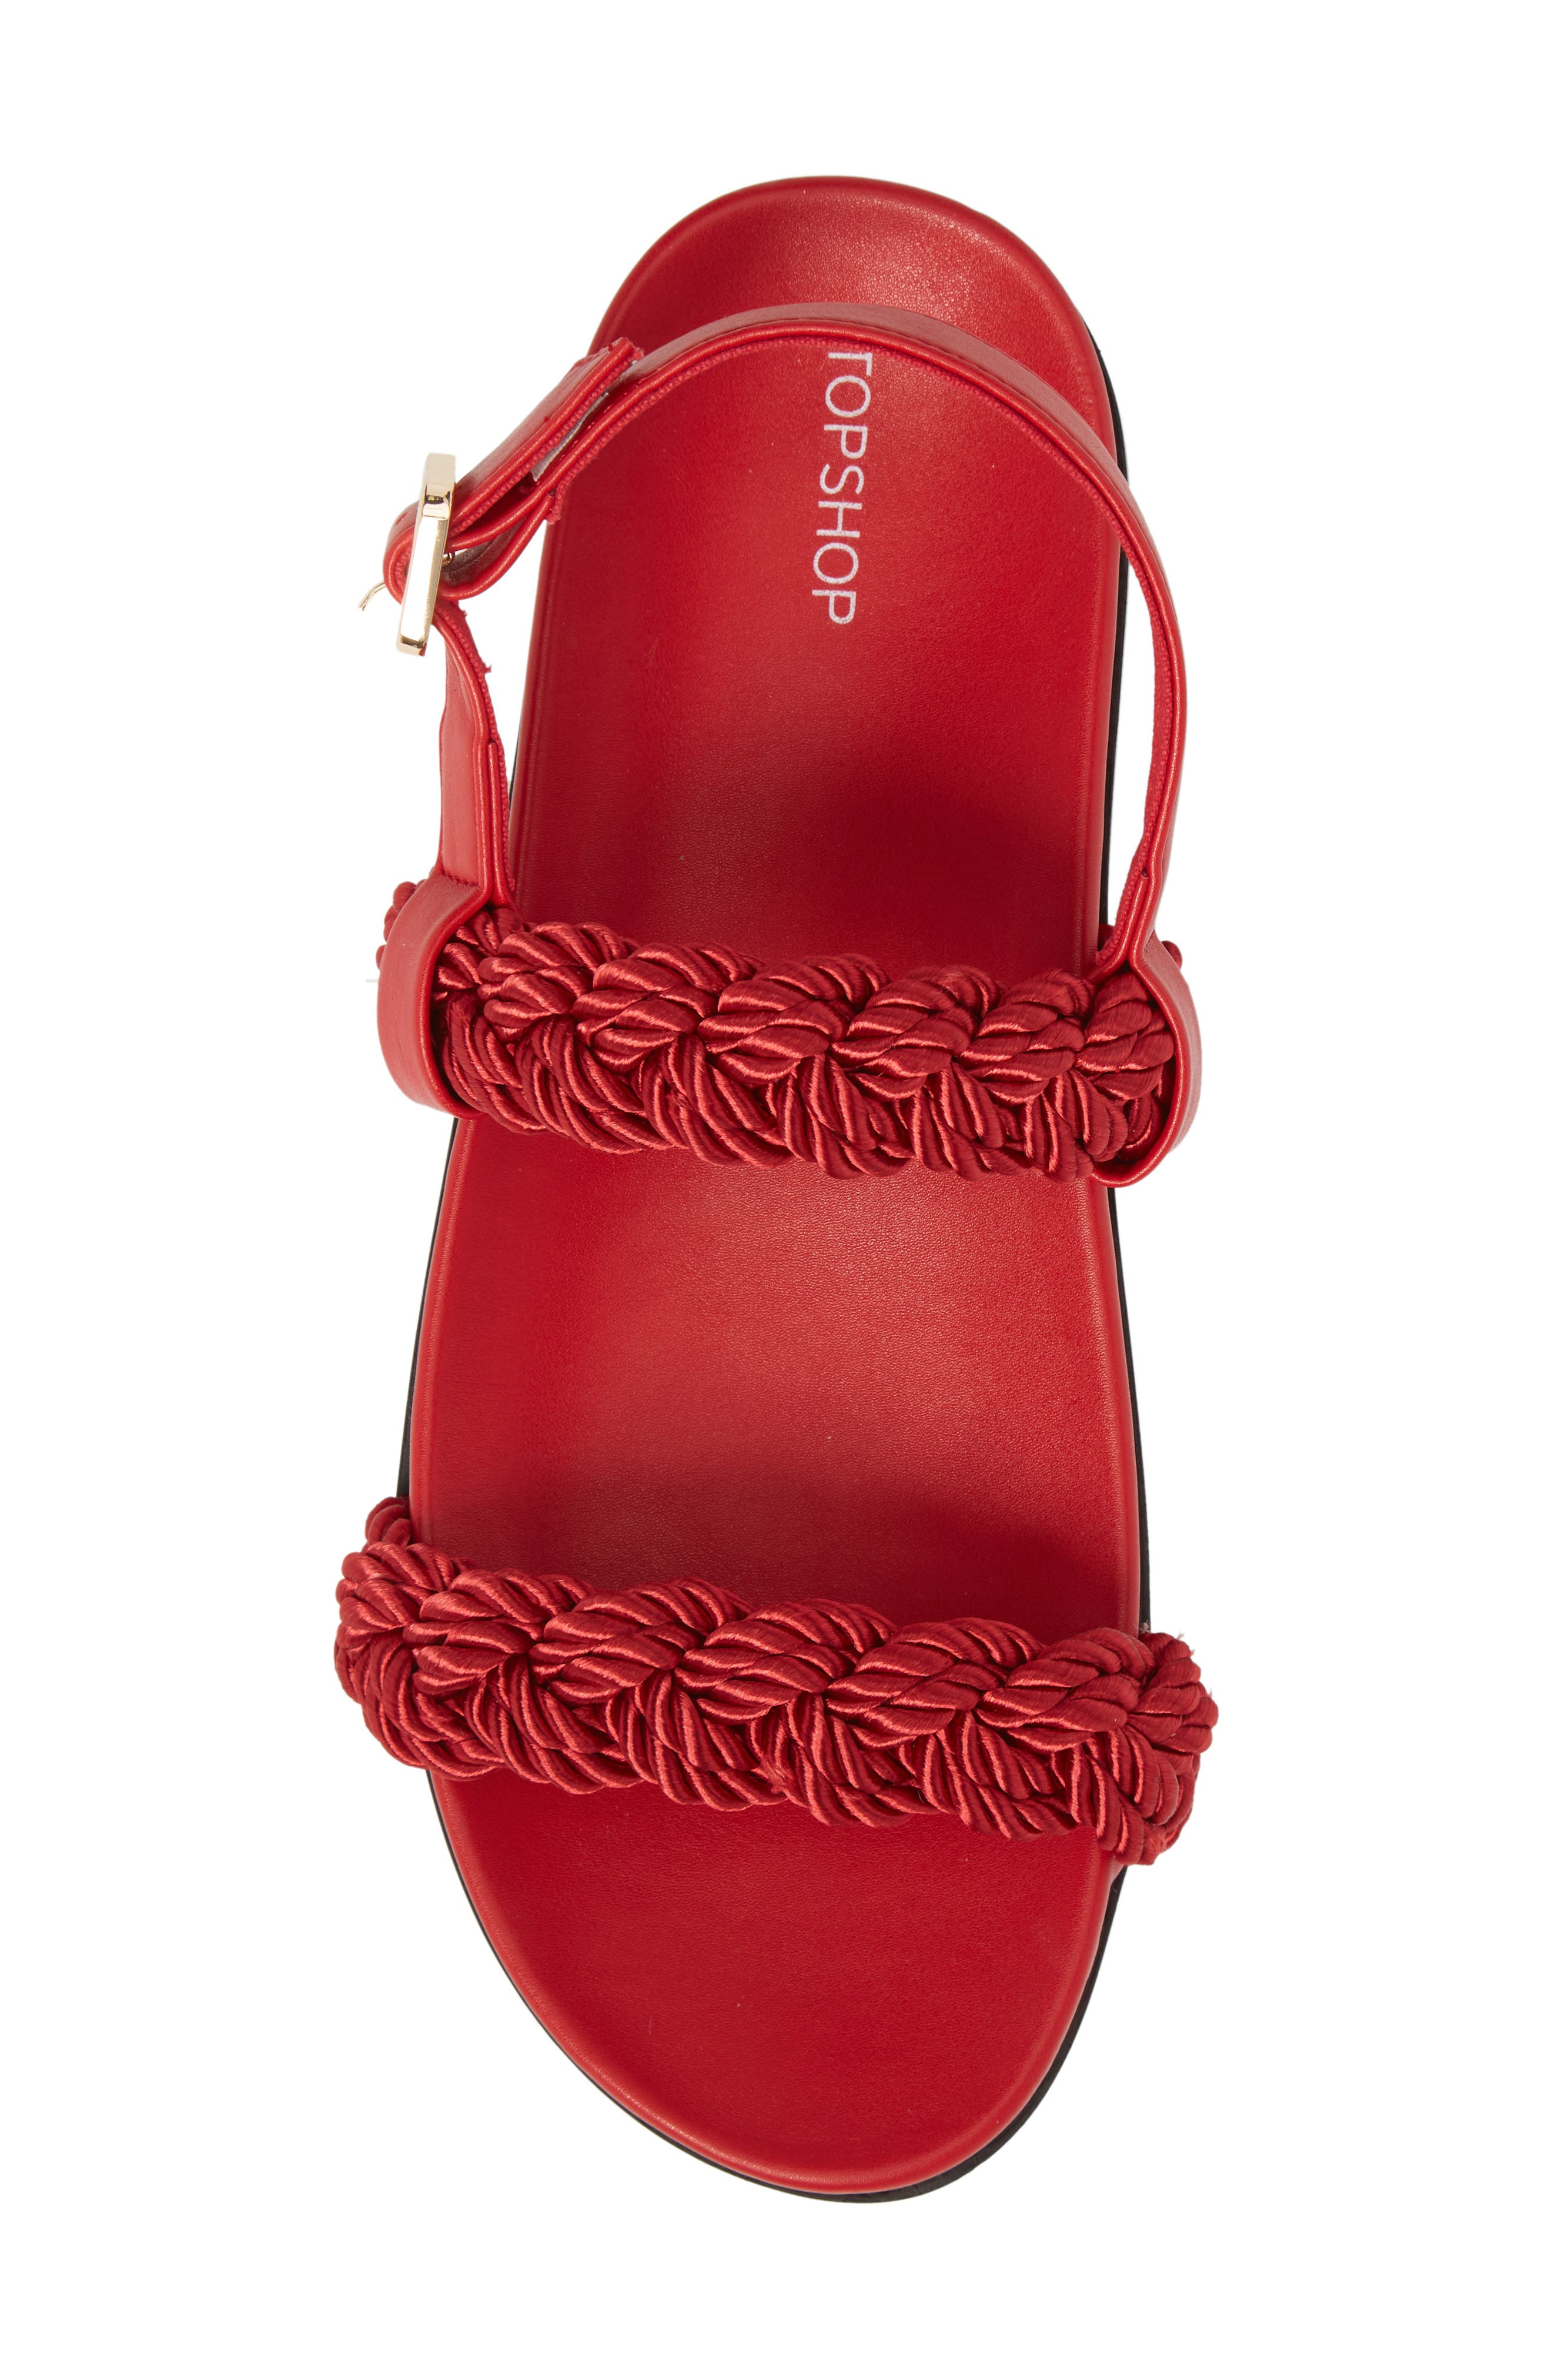 Hackney Rope Footbed Sandals,                             Alternate thumbnail 5, color,                             600